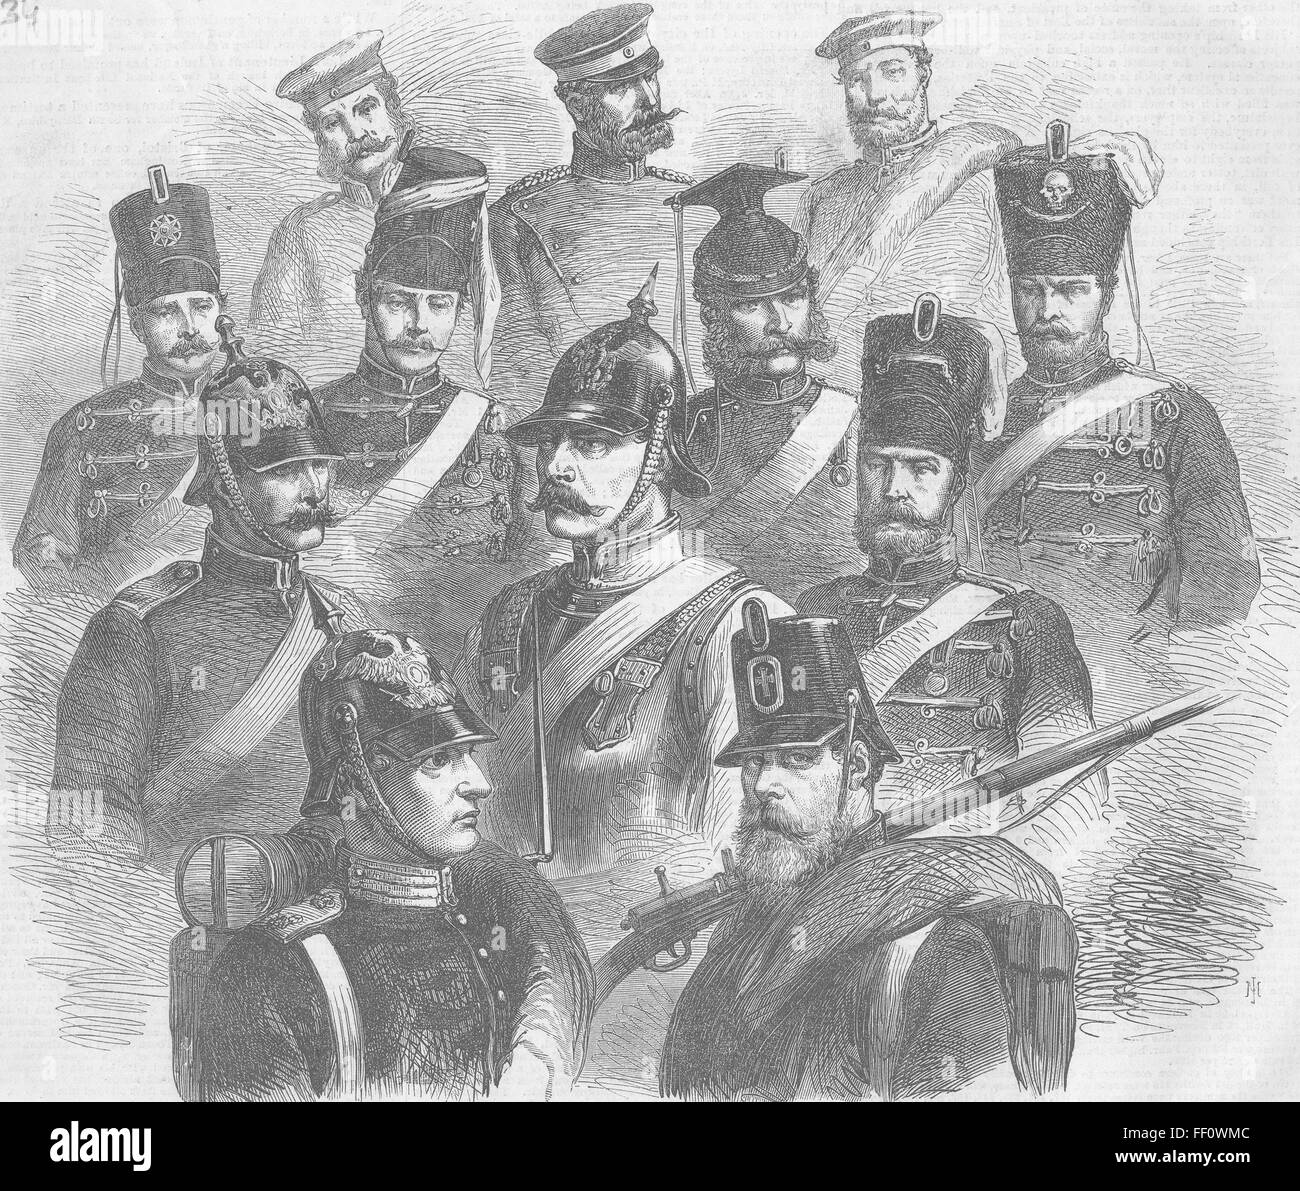 GERMANY Troops of Prussian Army 1866. Illustrated London News - Stock Image